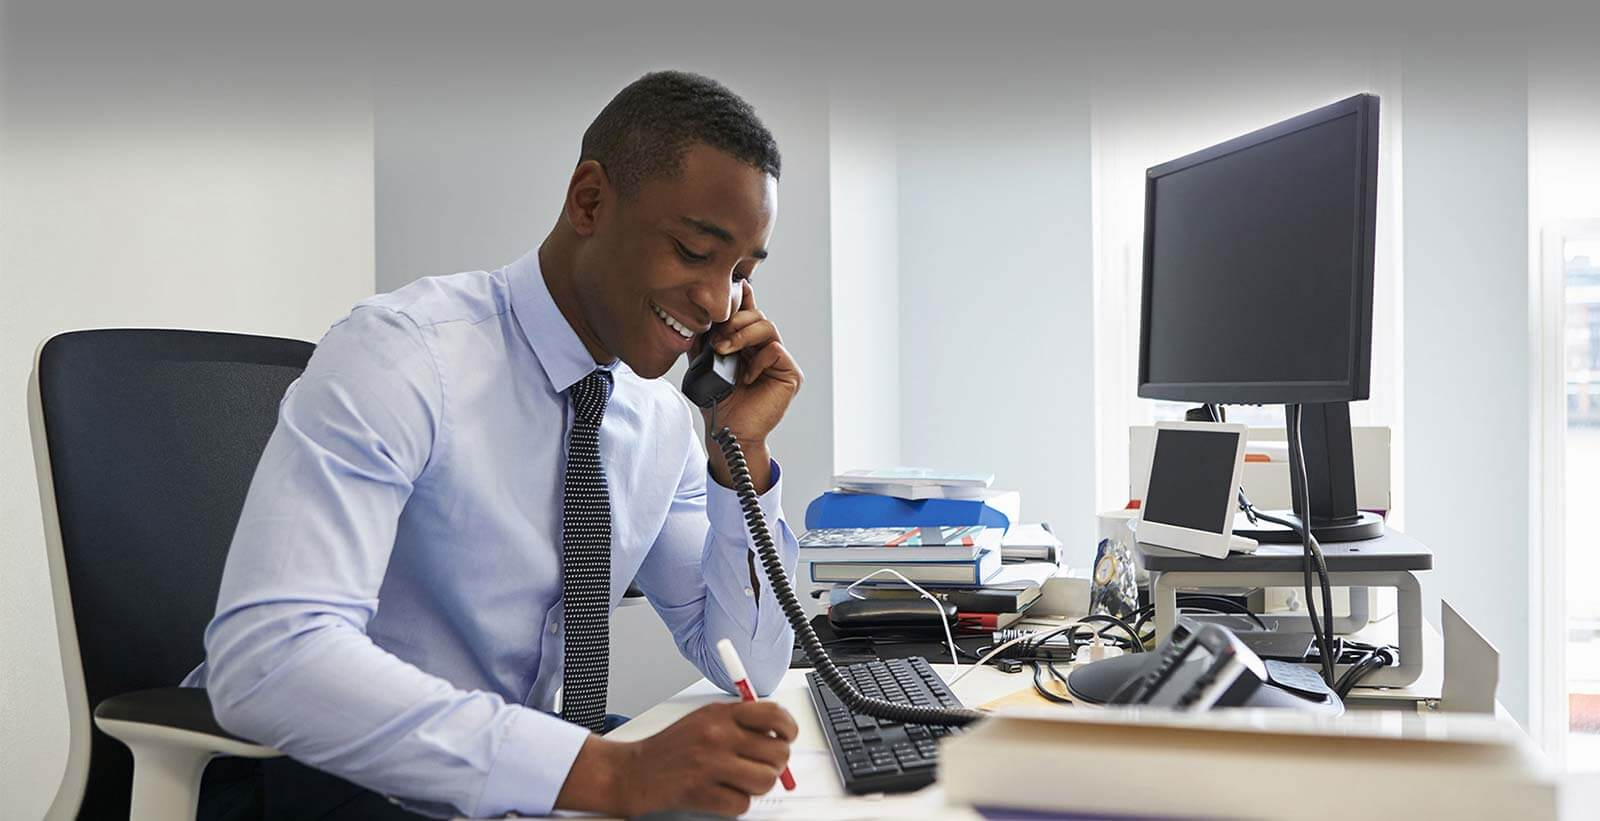 Vision voice & data young black businessman using the phone at his office desk